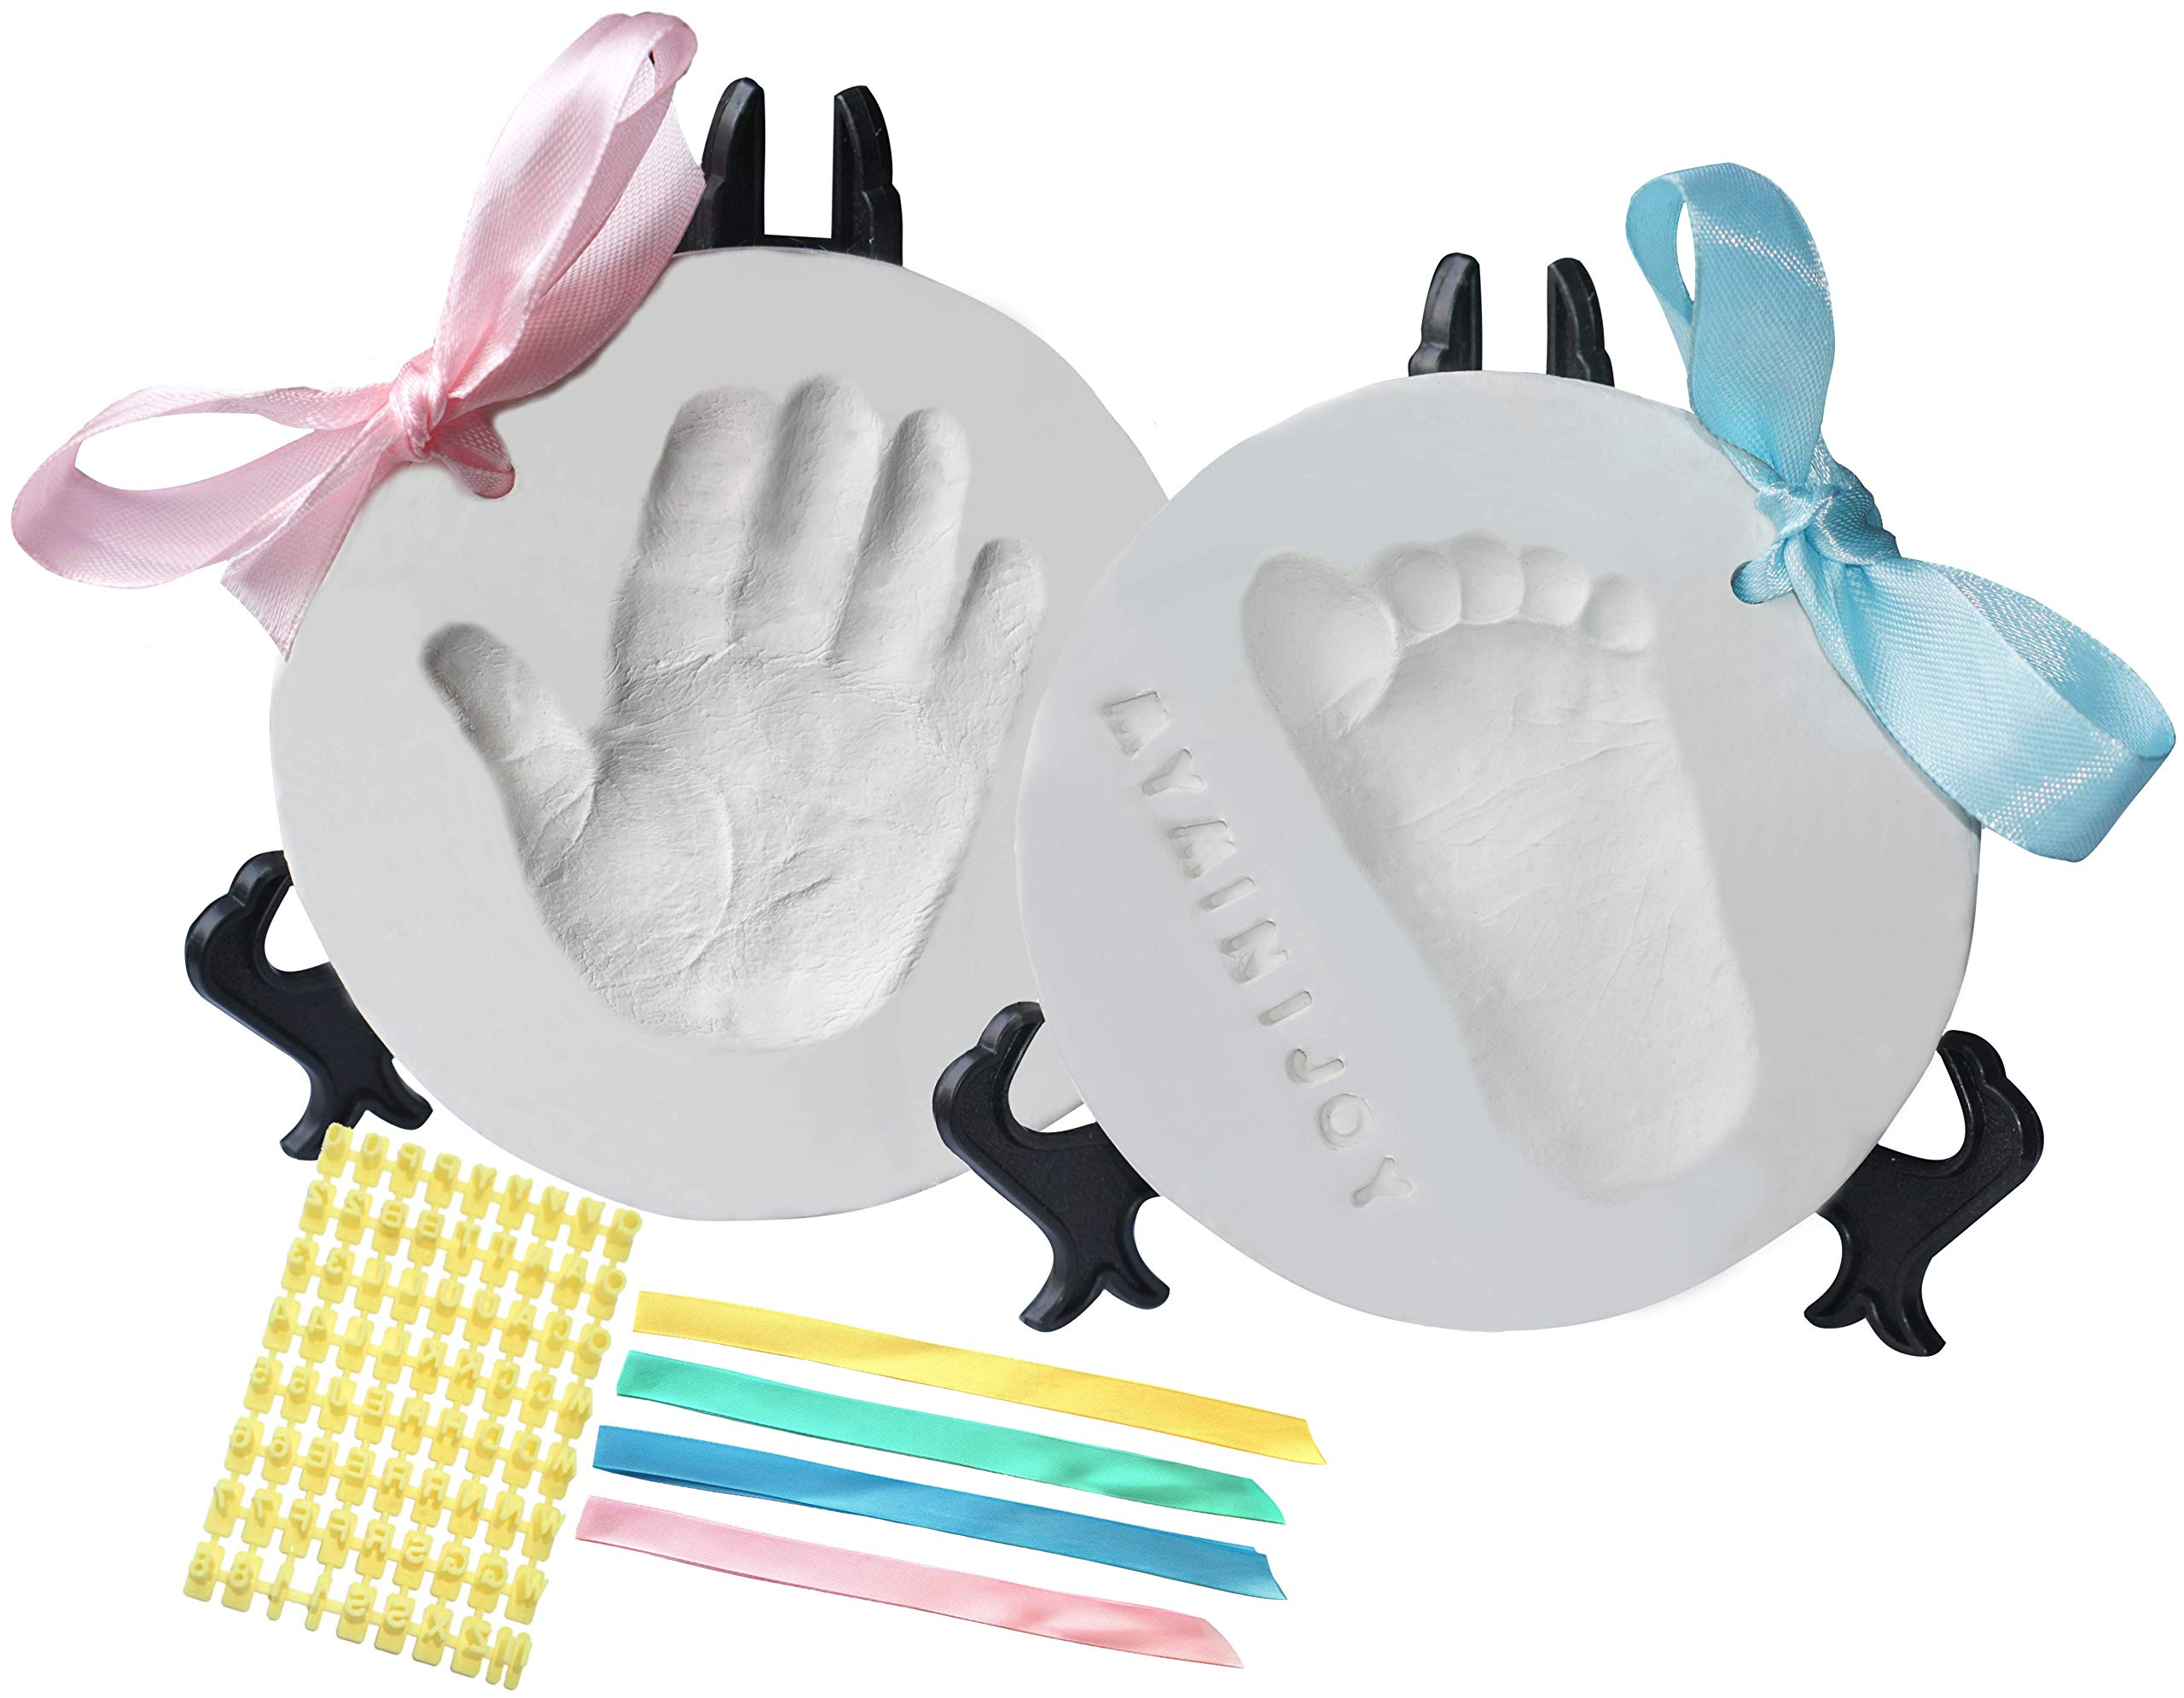 MyMiniJoy Baby Ornament Keepsake Kit (Super Bundle, 4 Ribbons, 2 Easels, Letter Set) Unique Handprint and Footprint Clay Casting Kit - Baby Shower Gift Ideas for Boys and Girls - Personalized Registry